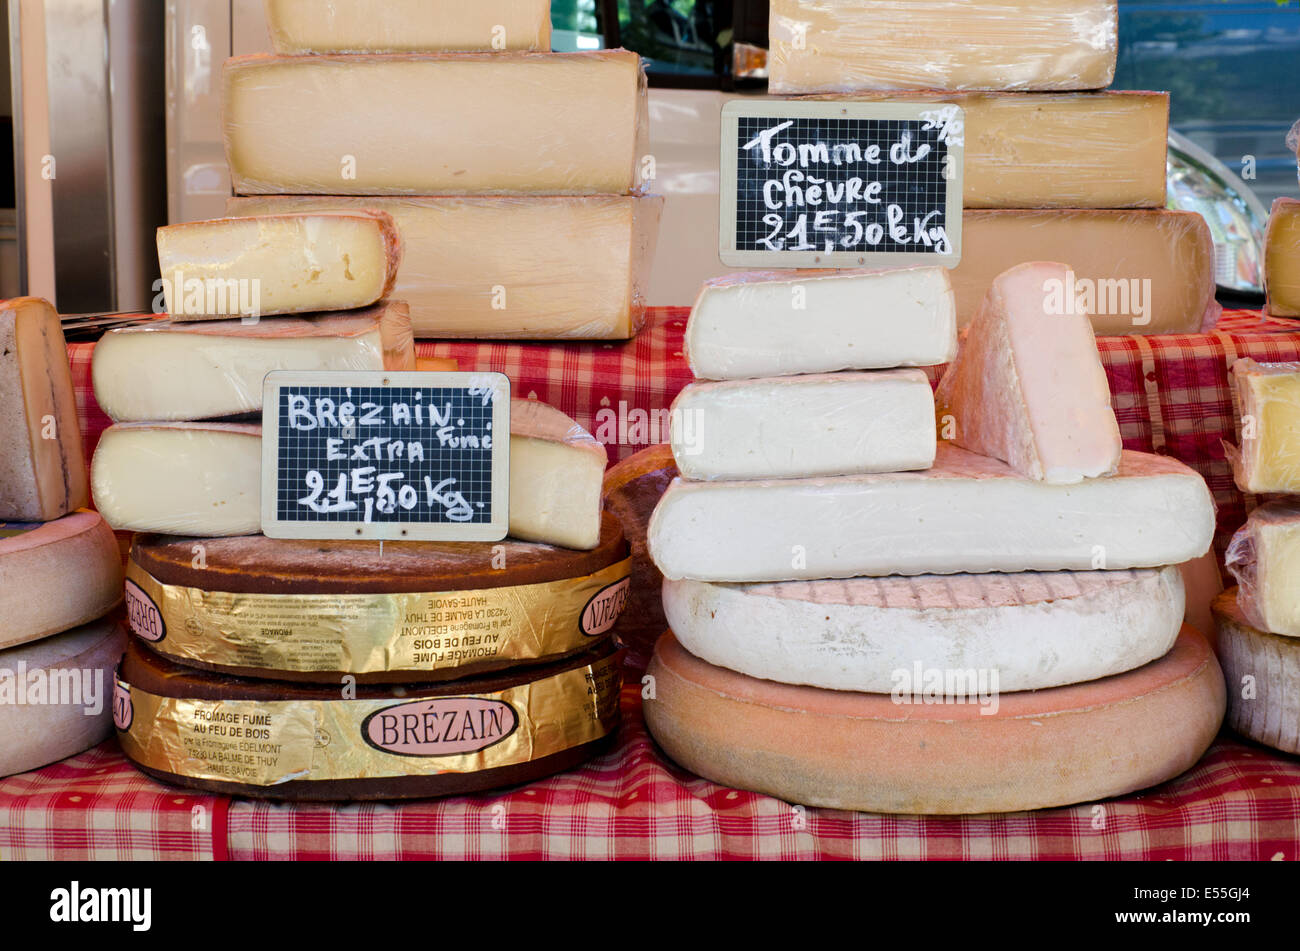 Smoked and Goat's cheese on a stall at the Saturday market in Chamonix, Haute Savoie, France. - Stock Image